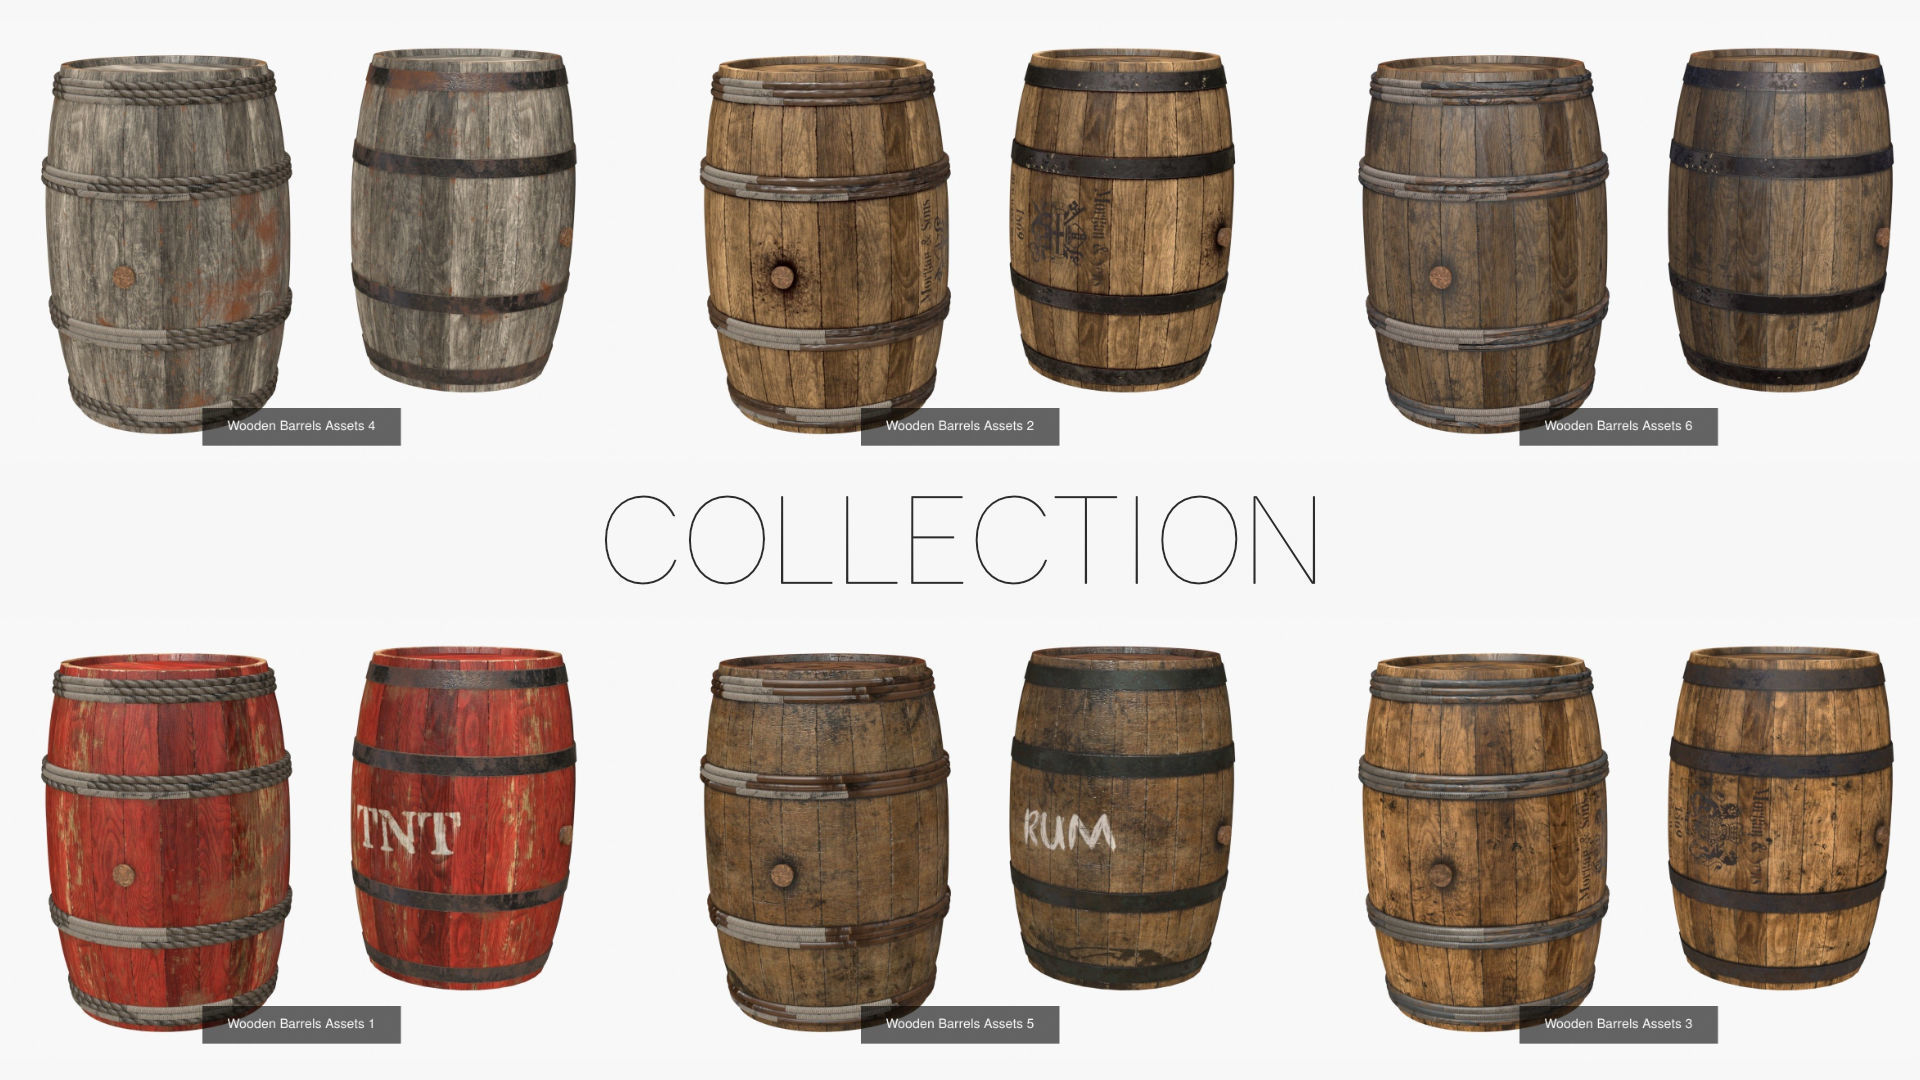 Wooden Barrel Assets Collection